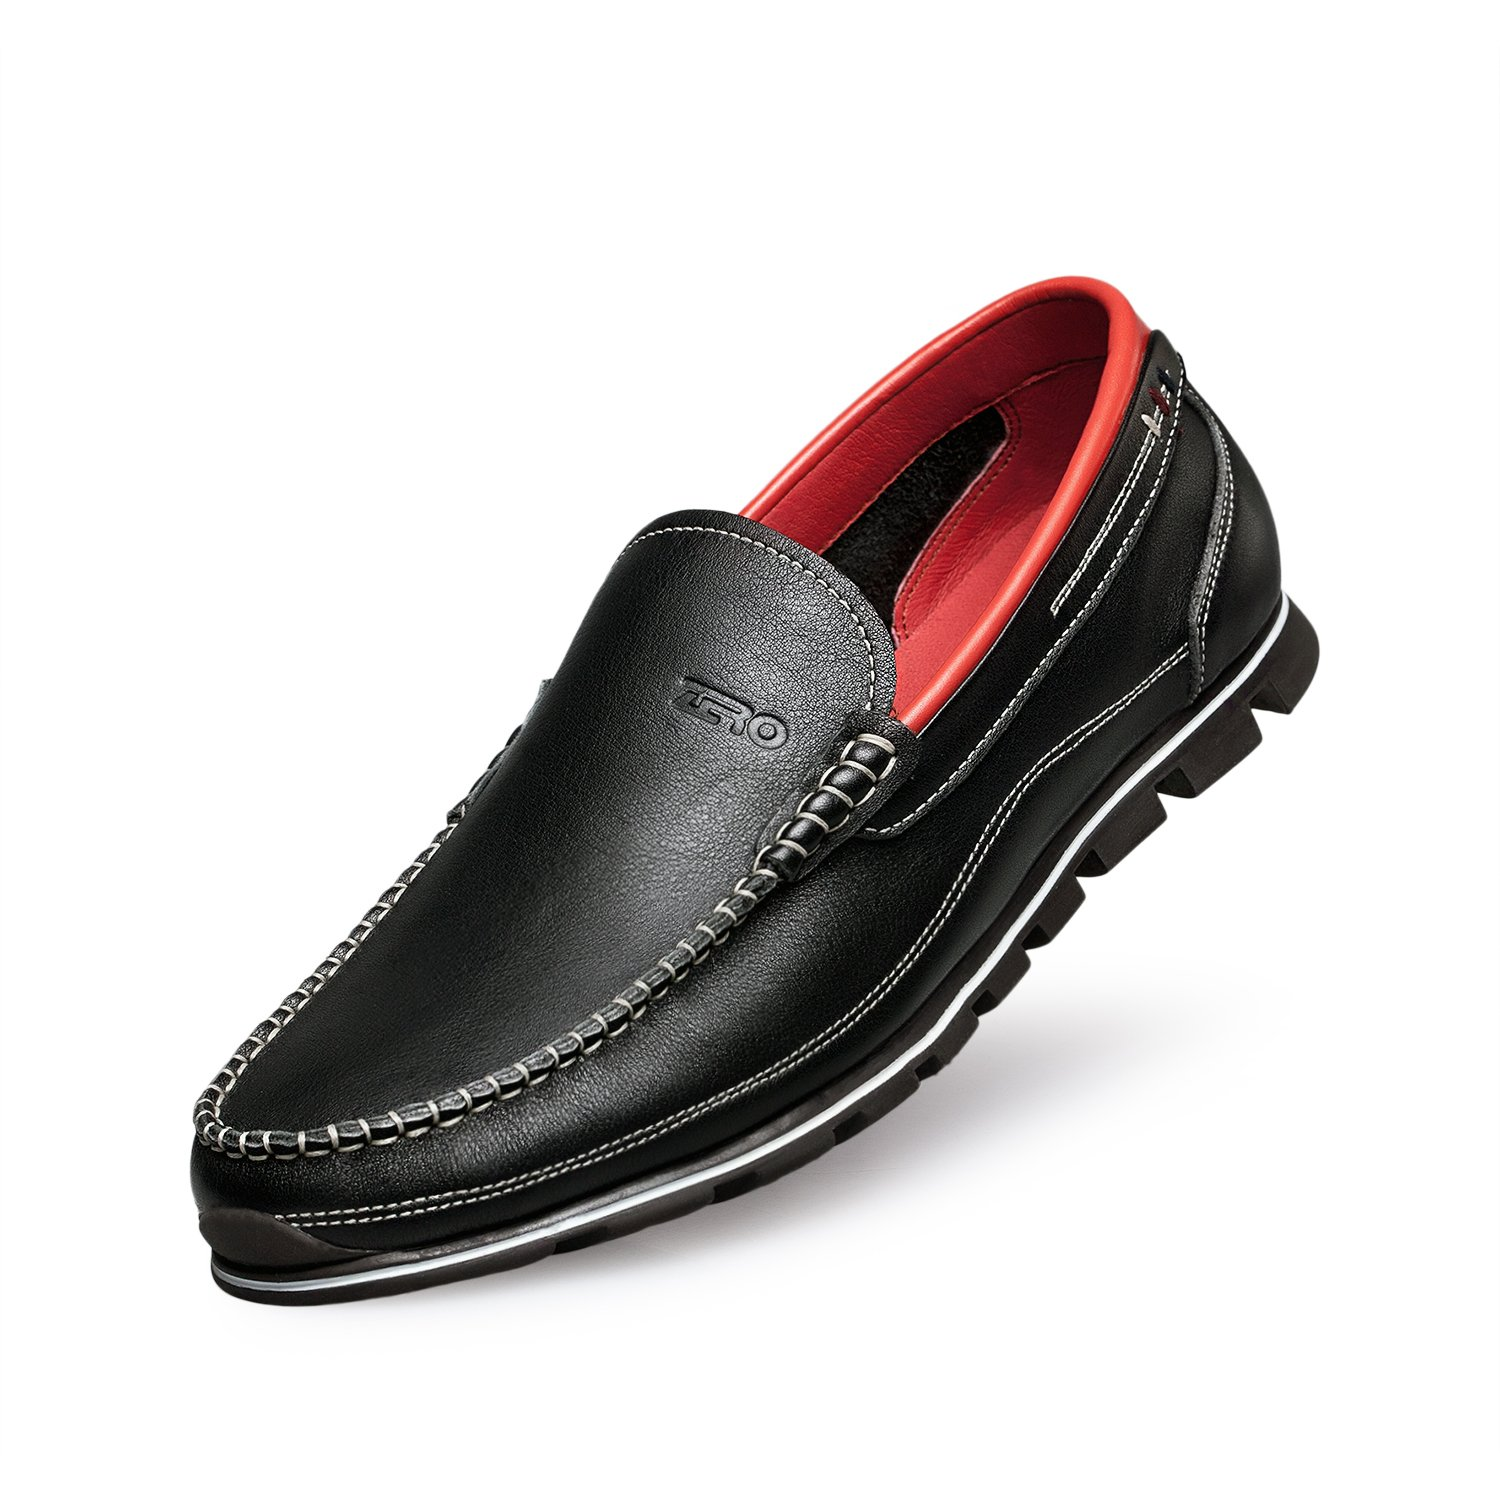 ZRO Men's Classy Black Penny Slip-on Loafer for Driving Working Walking Dress Running 10 M US by ZRO (Image #1)